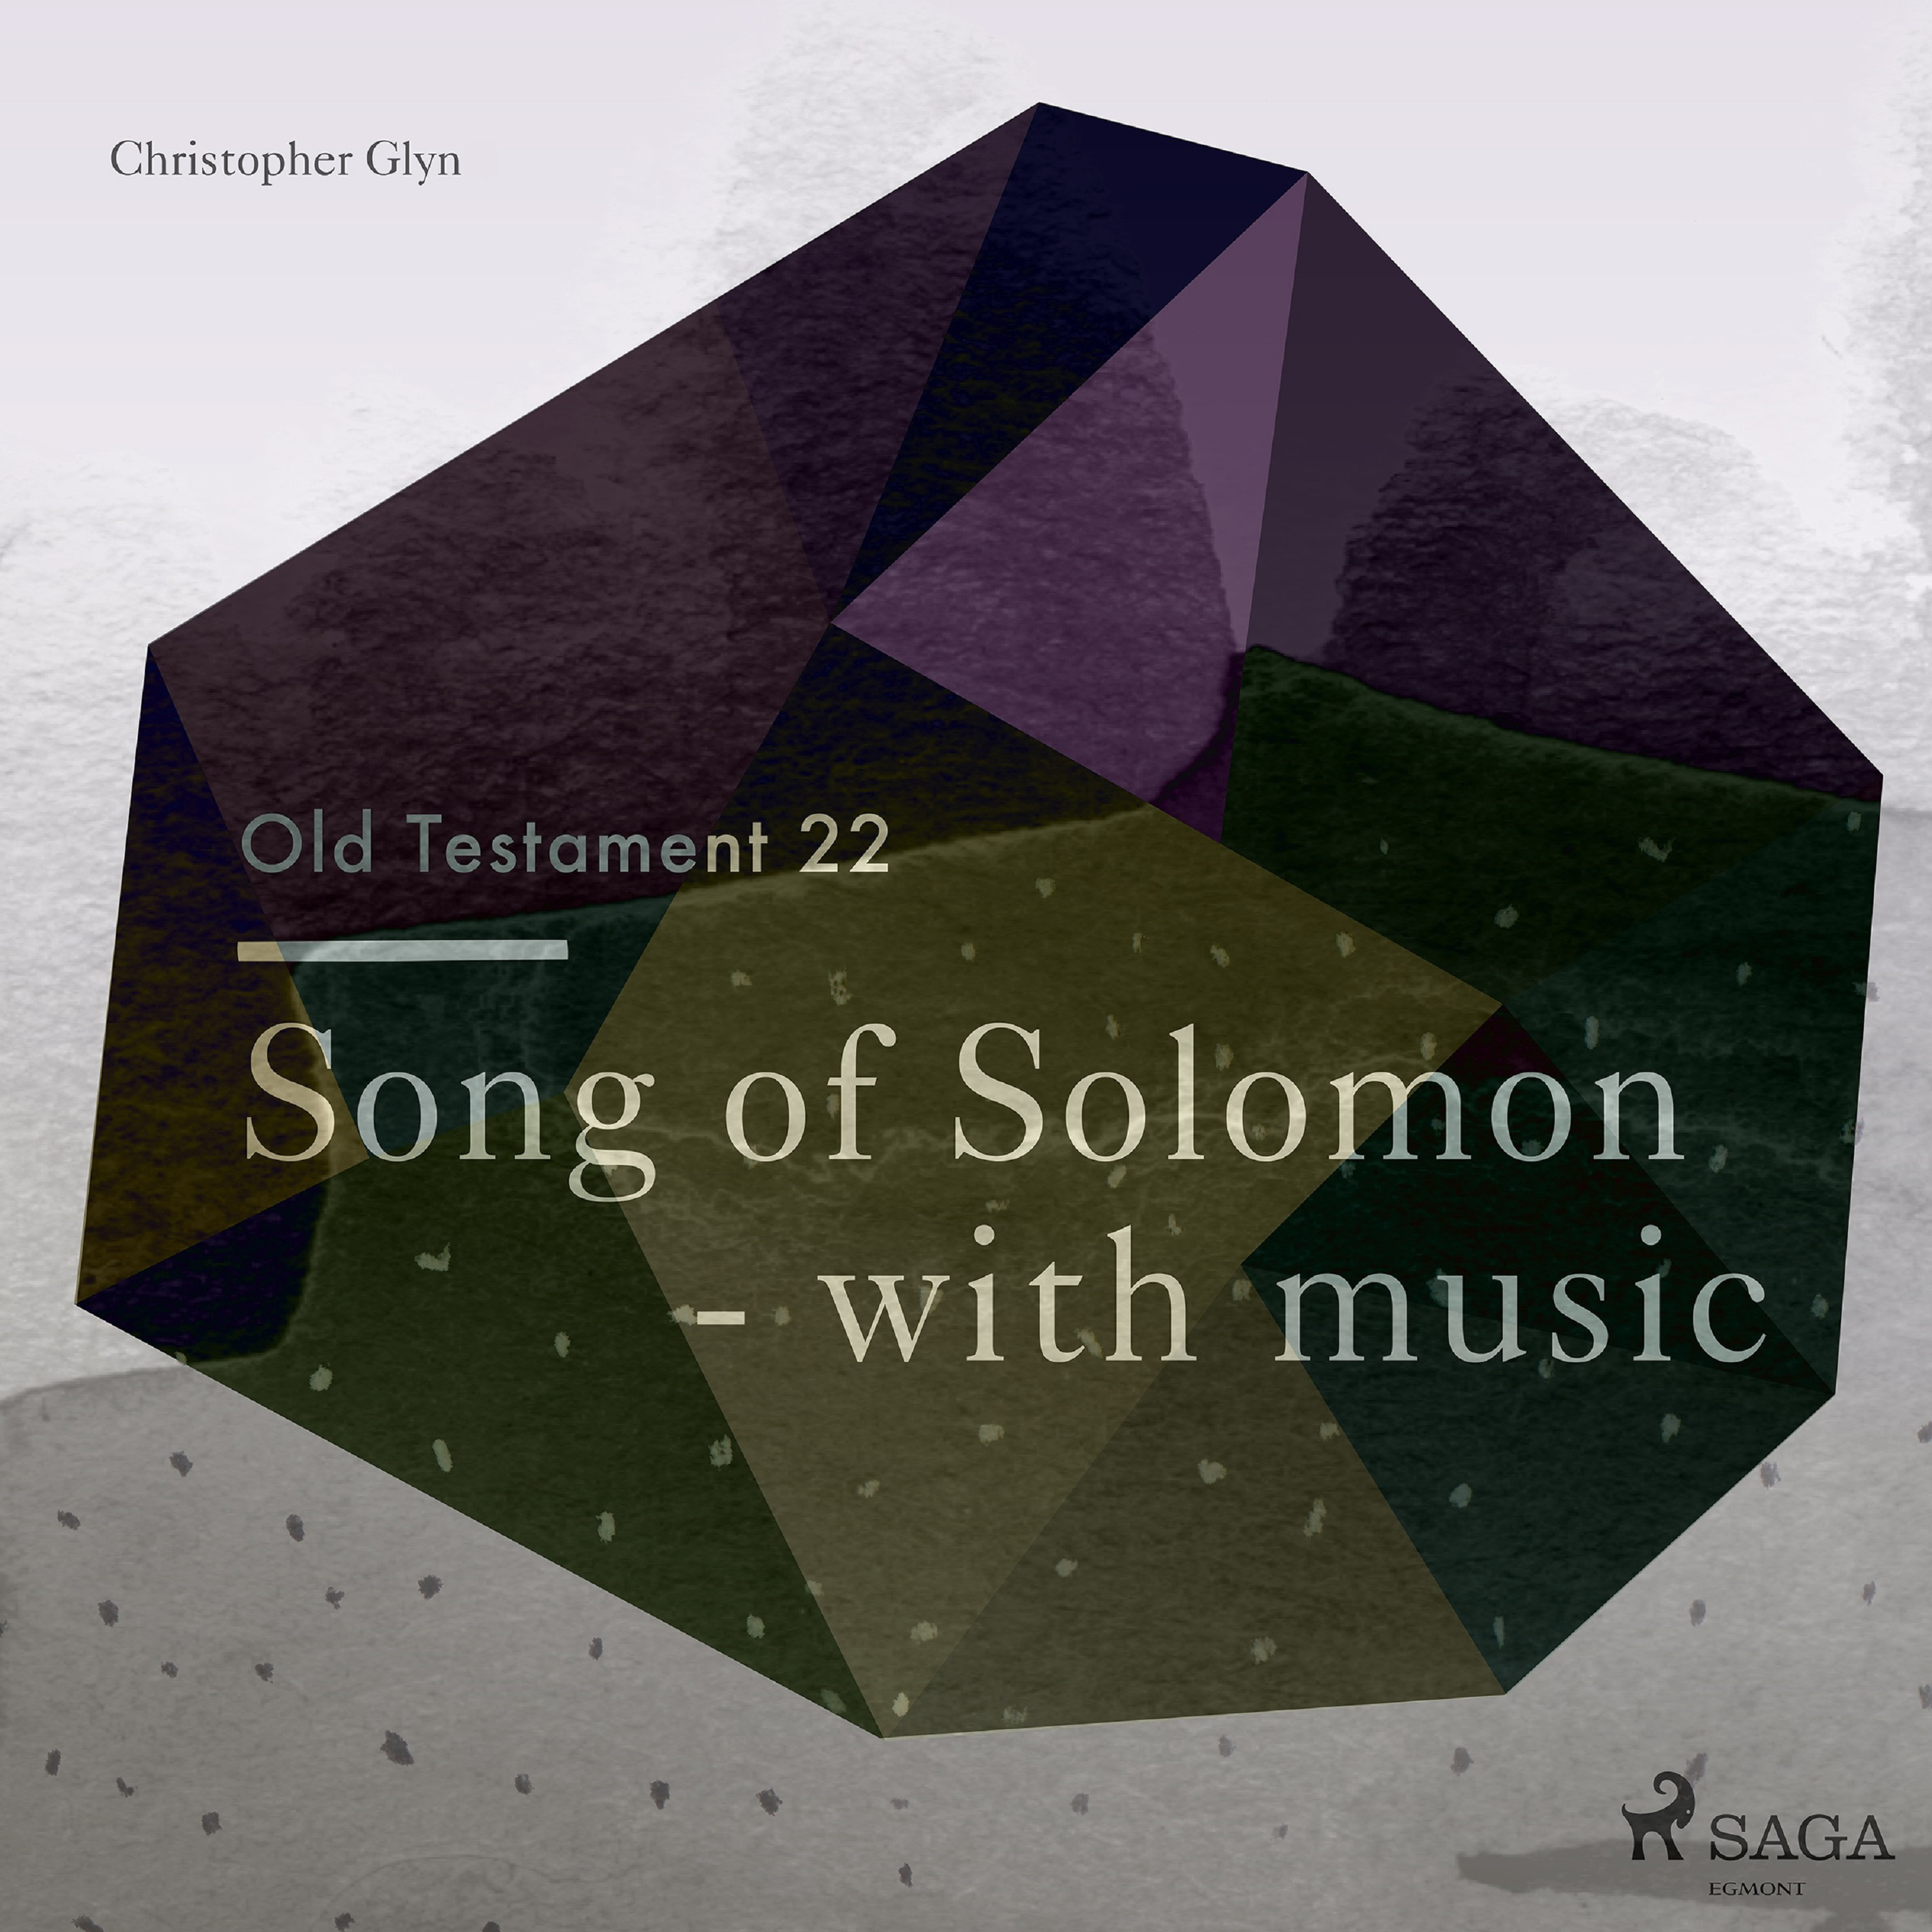 The Old Testament 22 - Song Of Solomon - with music (EN)